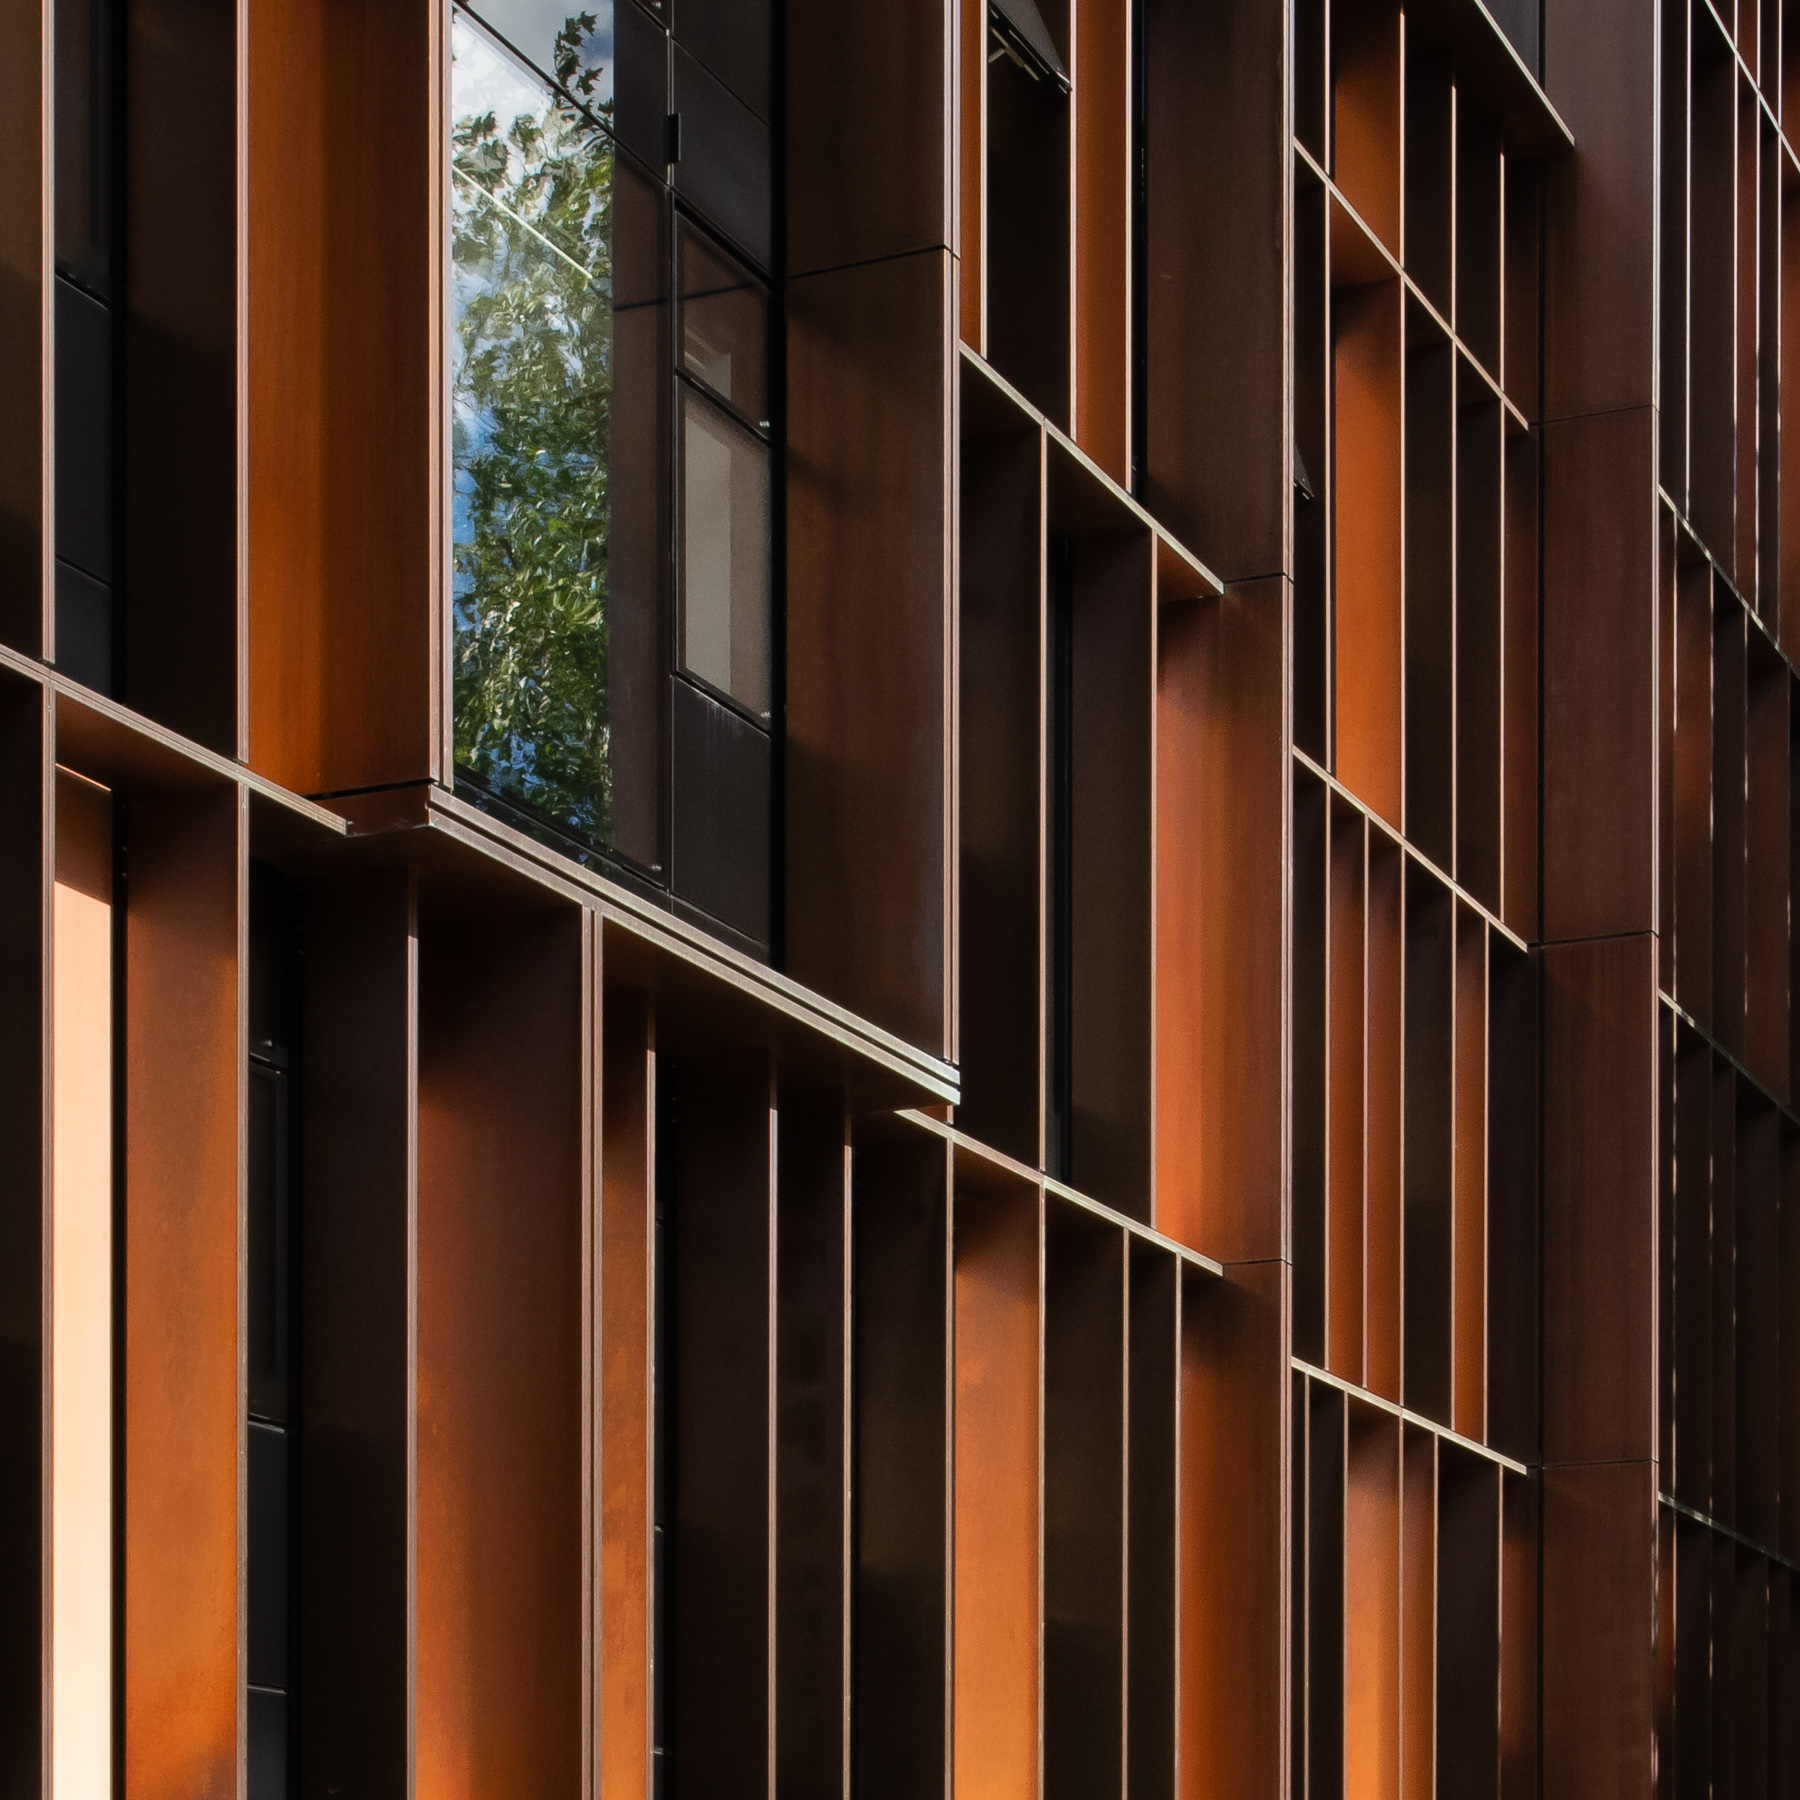 Close view of a copper wall of Beecroft Building located in United Kingdom. The wall is layered unorthodoxically. Walls are clad from brown-coloured copper by Aurubis and Nordic Copper. The photo has a singular rectangular window in the wall, surrounded by Nordic Brown Copper from Nordic Copper.